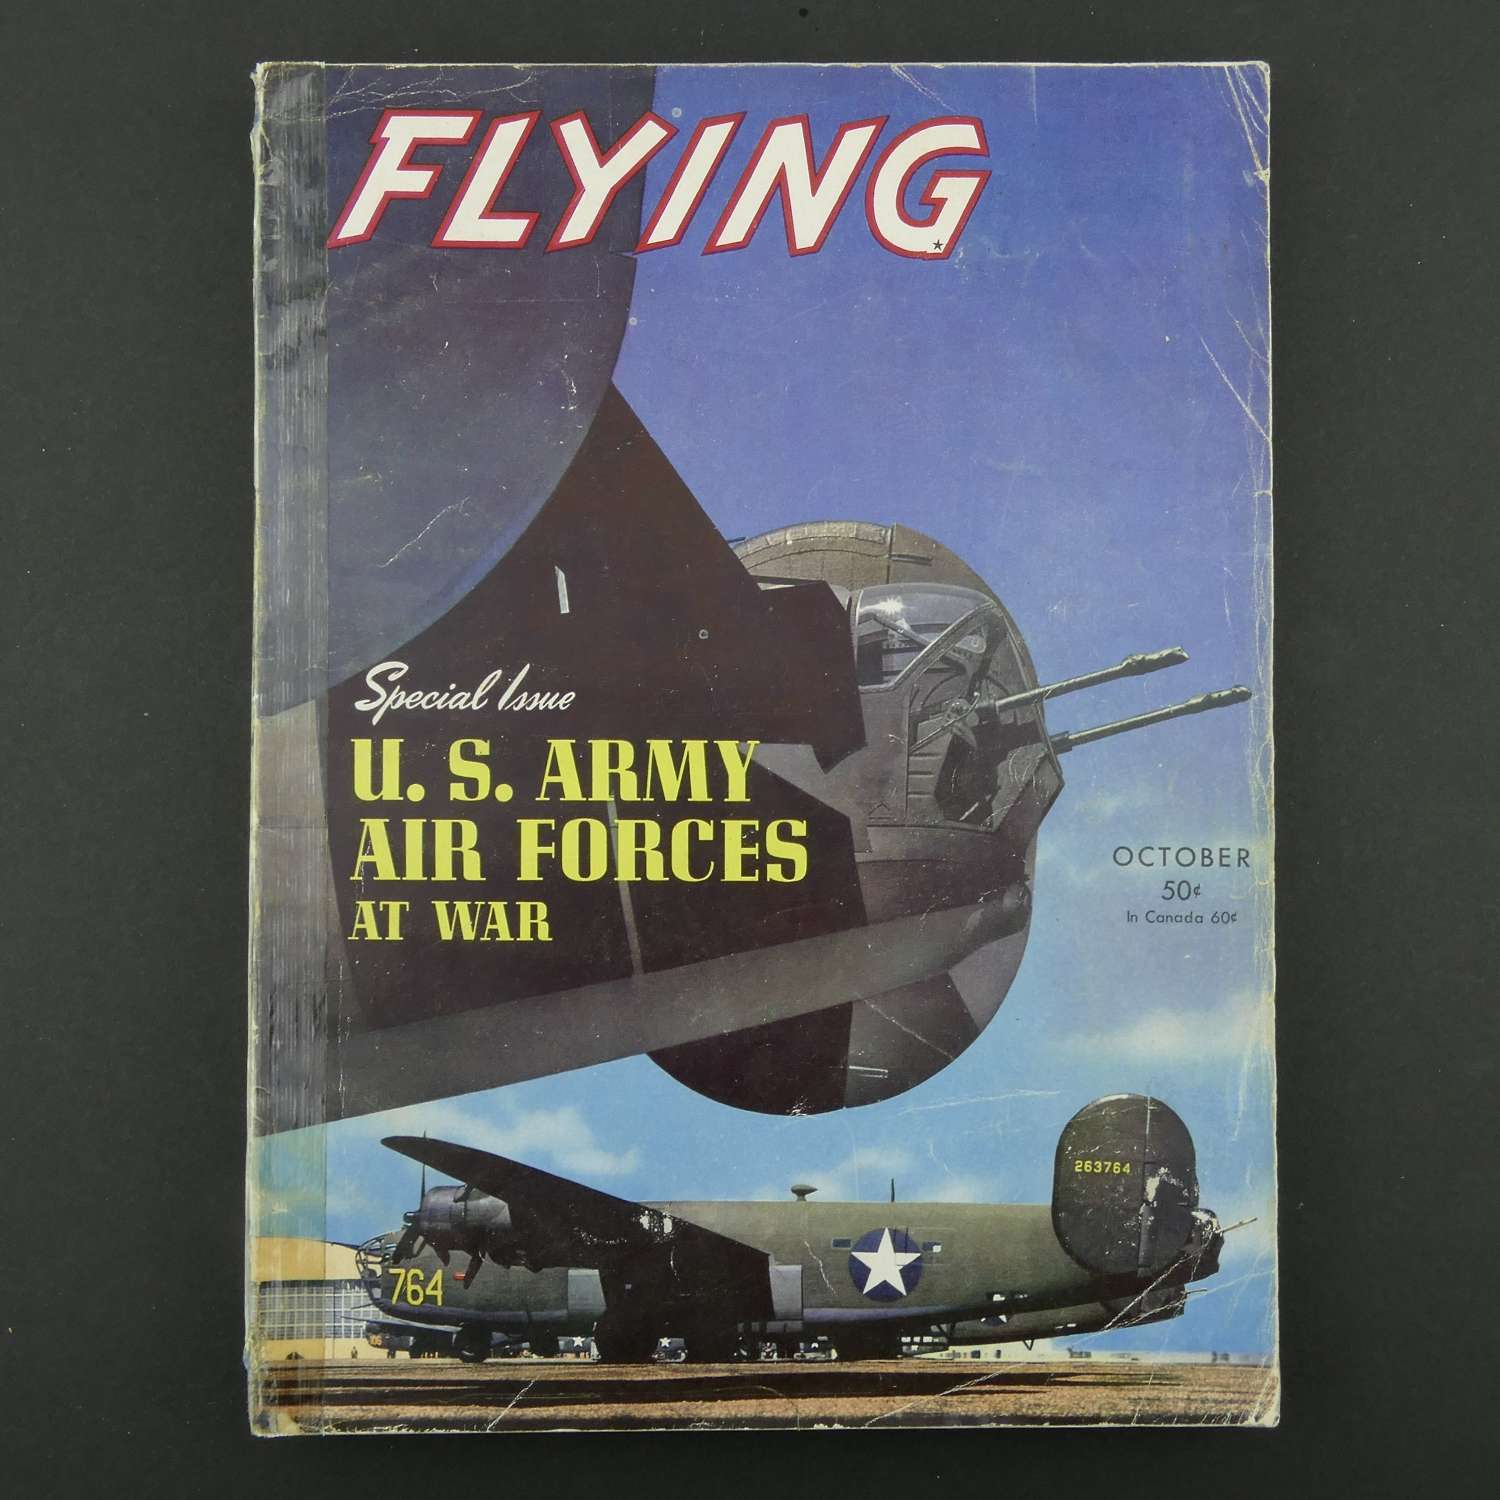 Flying magazine, Special Issue - USAAF at War